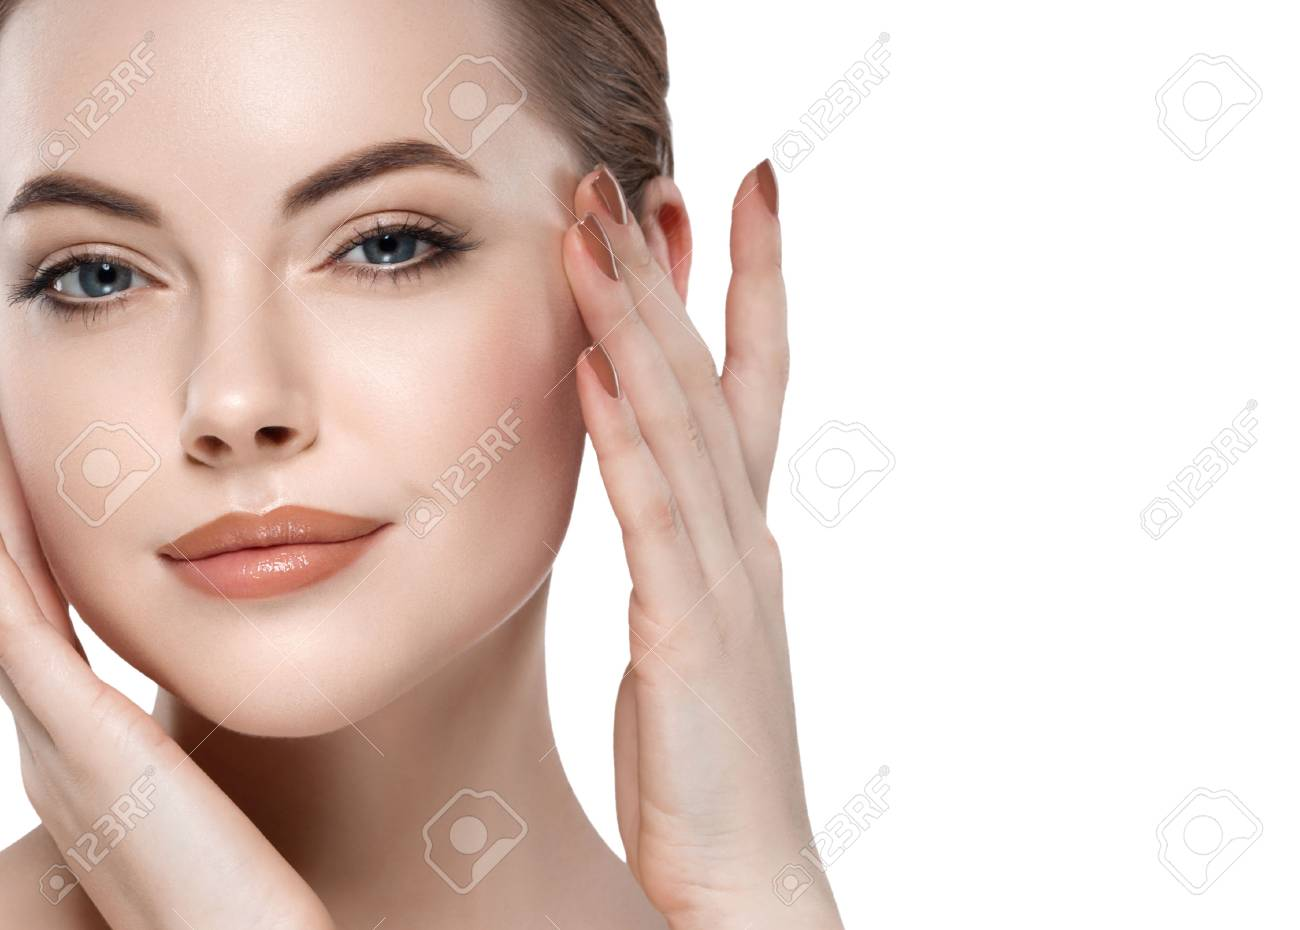 Woman beauty portrait isolated on white close up female face. Studio shot. - 65881832